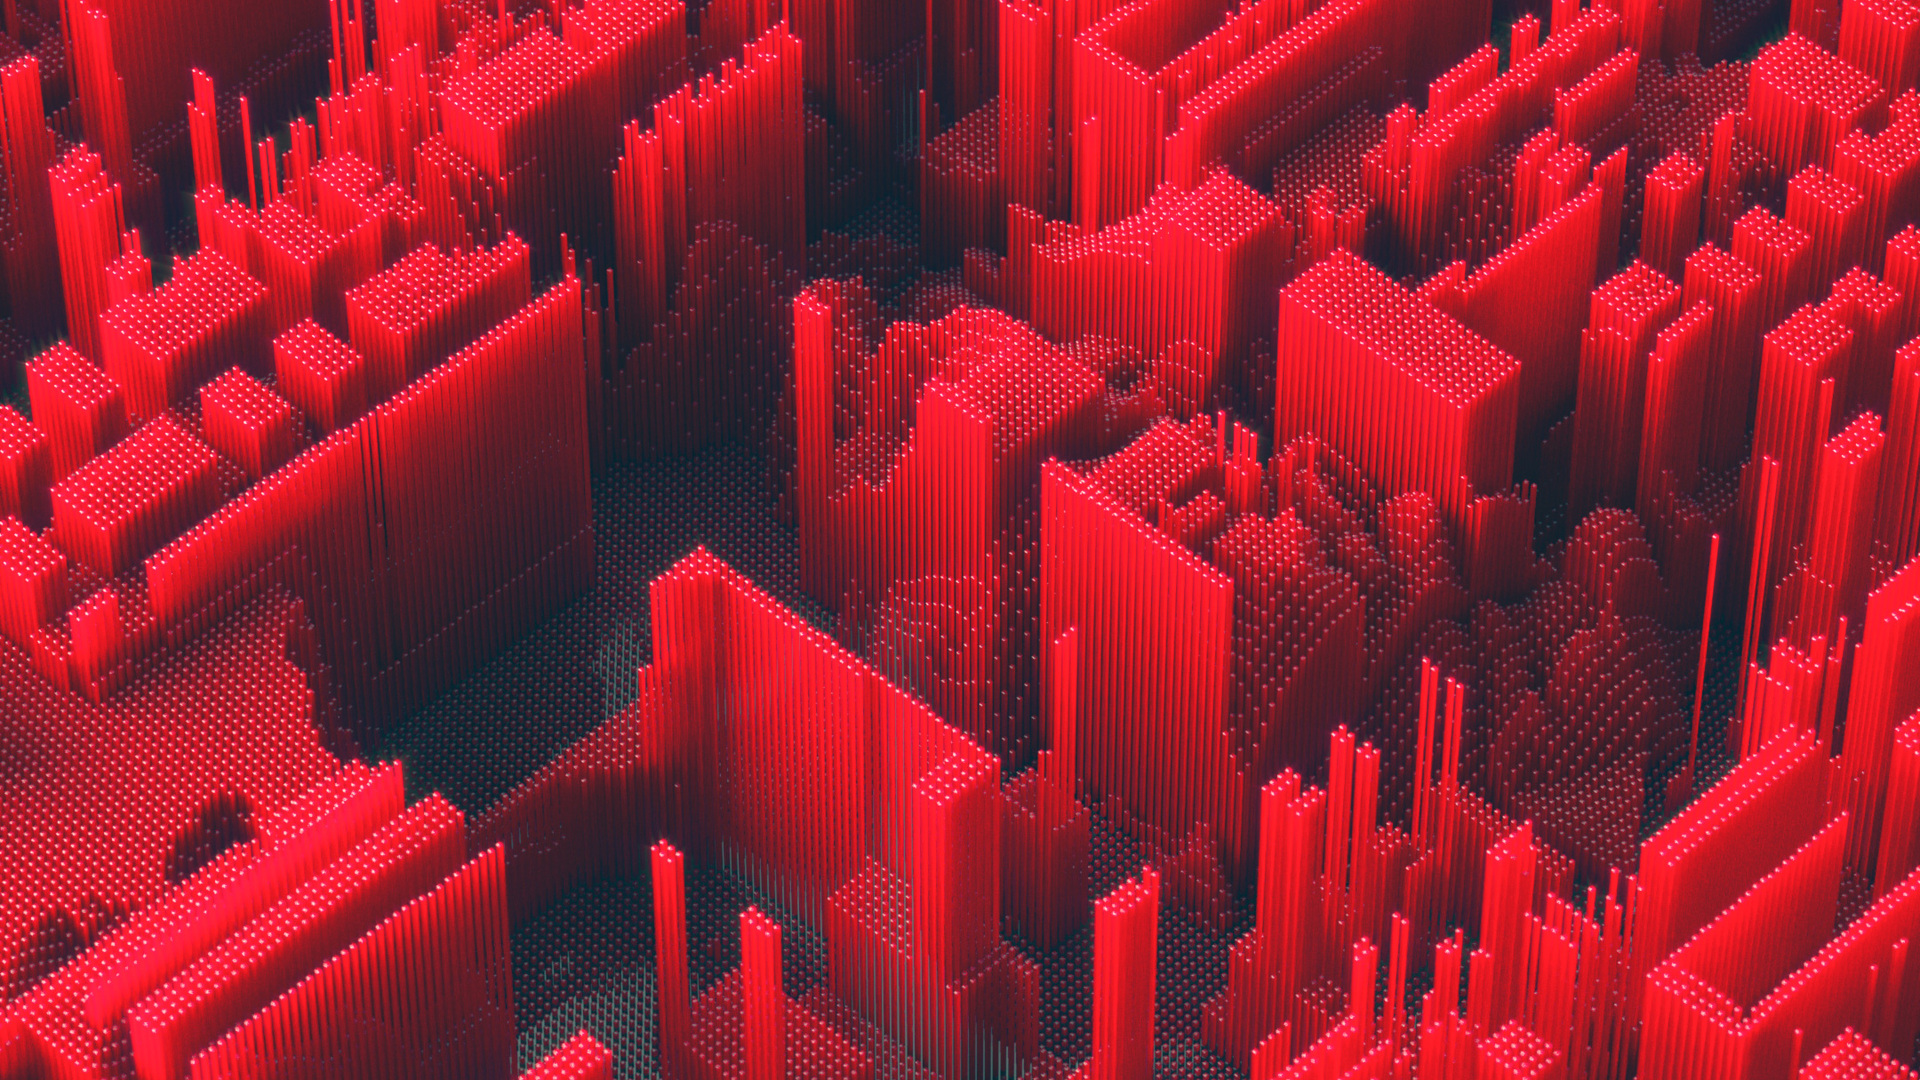 1920x1080 Red Abstract Geometry Laptop Full Hd 1080p Hd 4k